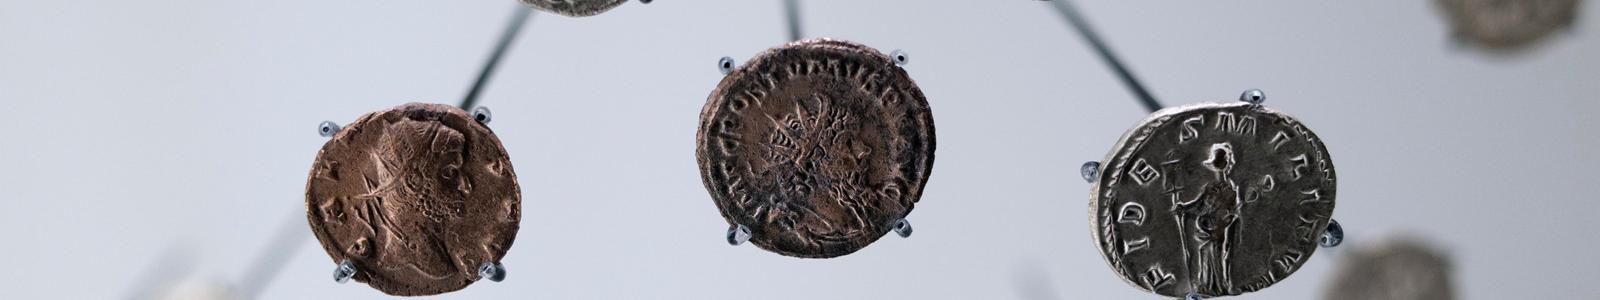 Coin, penny, part of a hoard found at White Lane, Greywell, Mapledurwell and Up Nately, Hampshire in 1989, issued by Henry III, minted by the moneyer Walter at London, 1251-1272